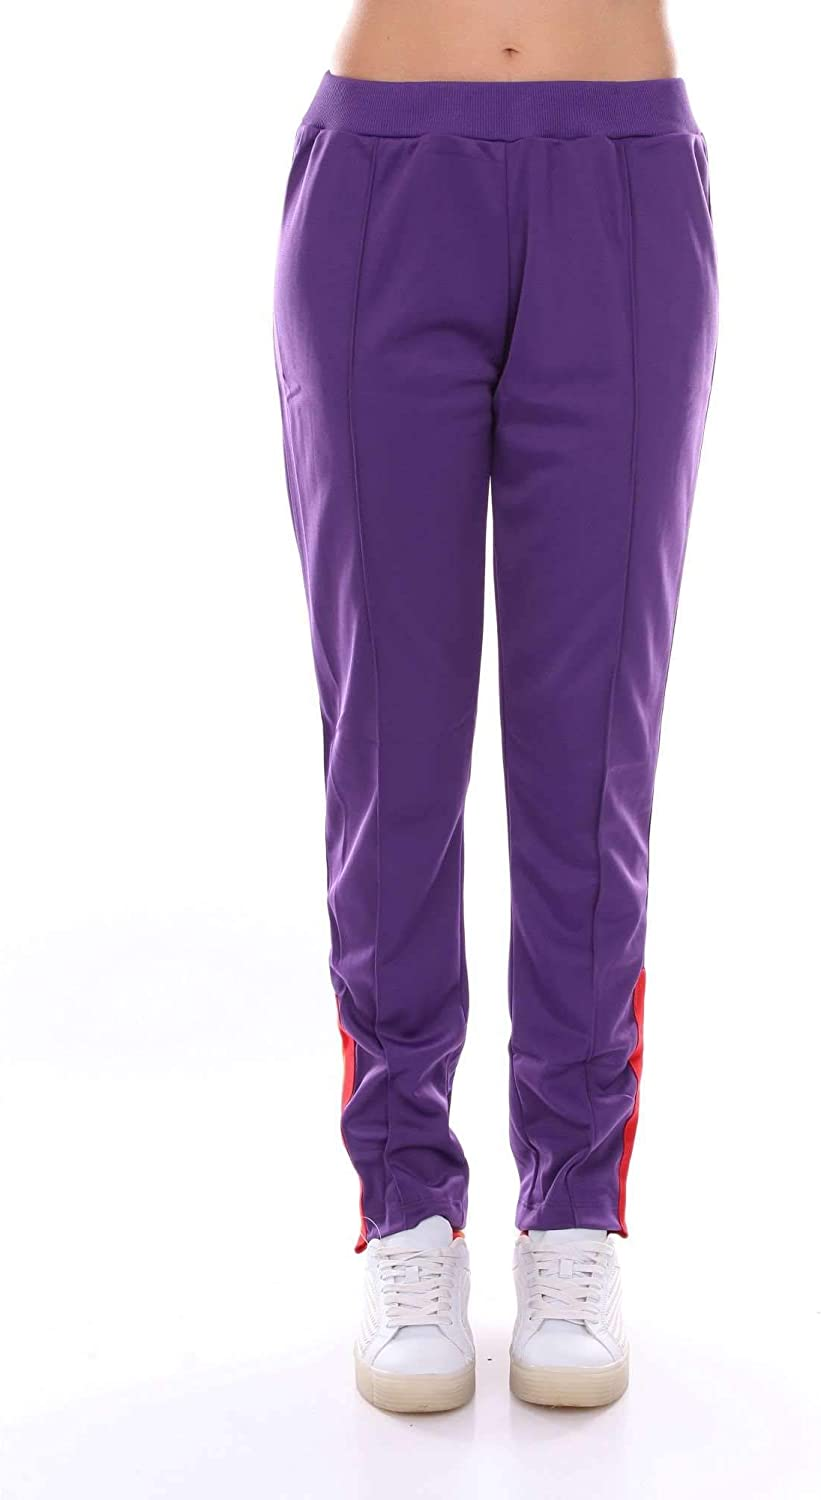 Akep Women's KE726PURPLE Purple Cotton Pants